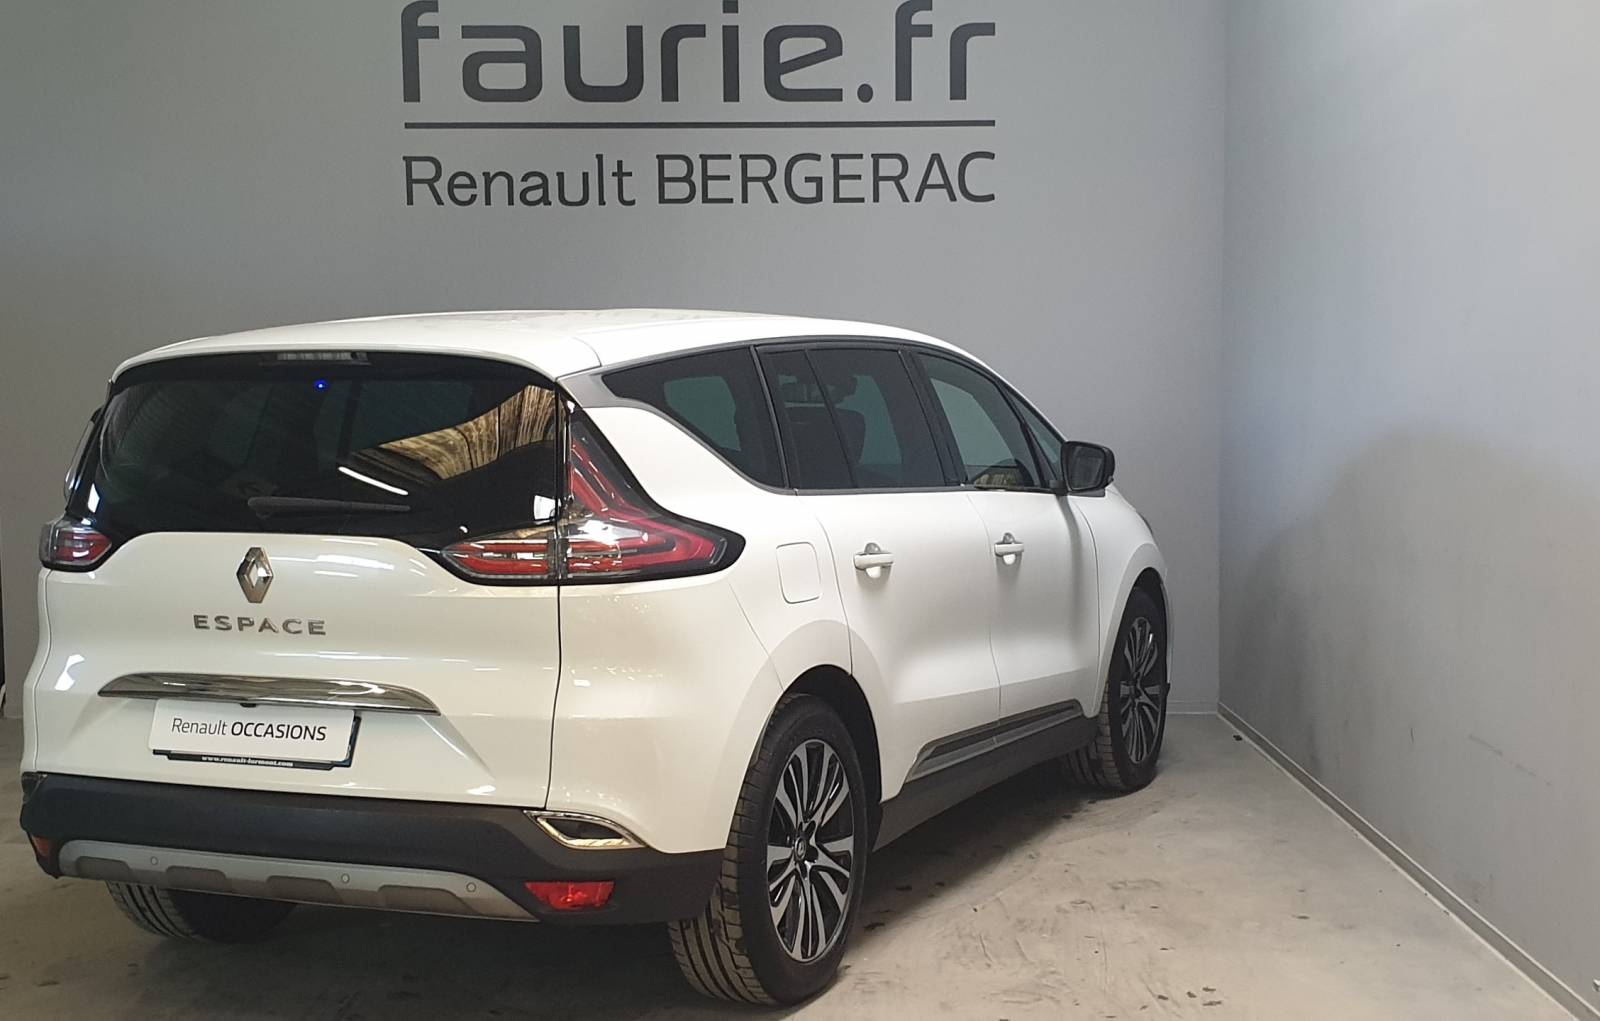 RENAULT Espace dCi 160 Energy Twin Turbo - véhicule d'occasion - Site Internet Faurie - Renault - Faurie Auto Bergerac - 24100 - Bergerac - 5